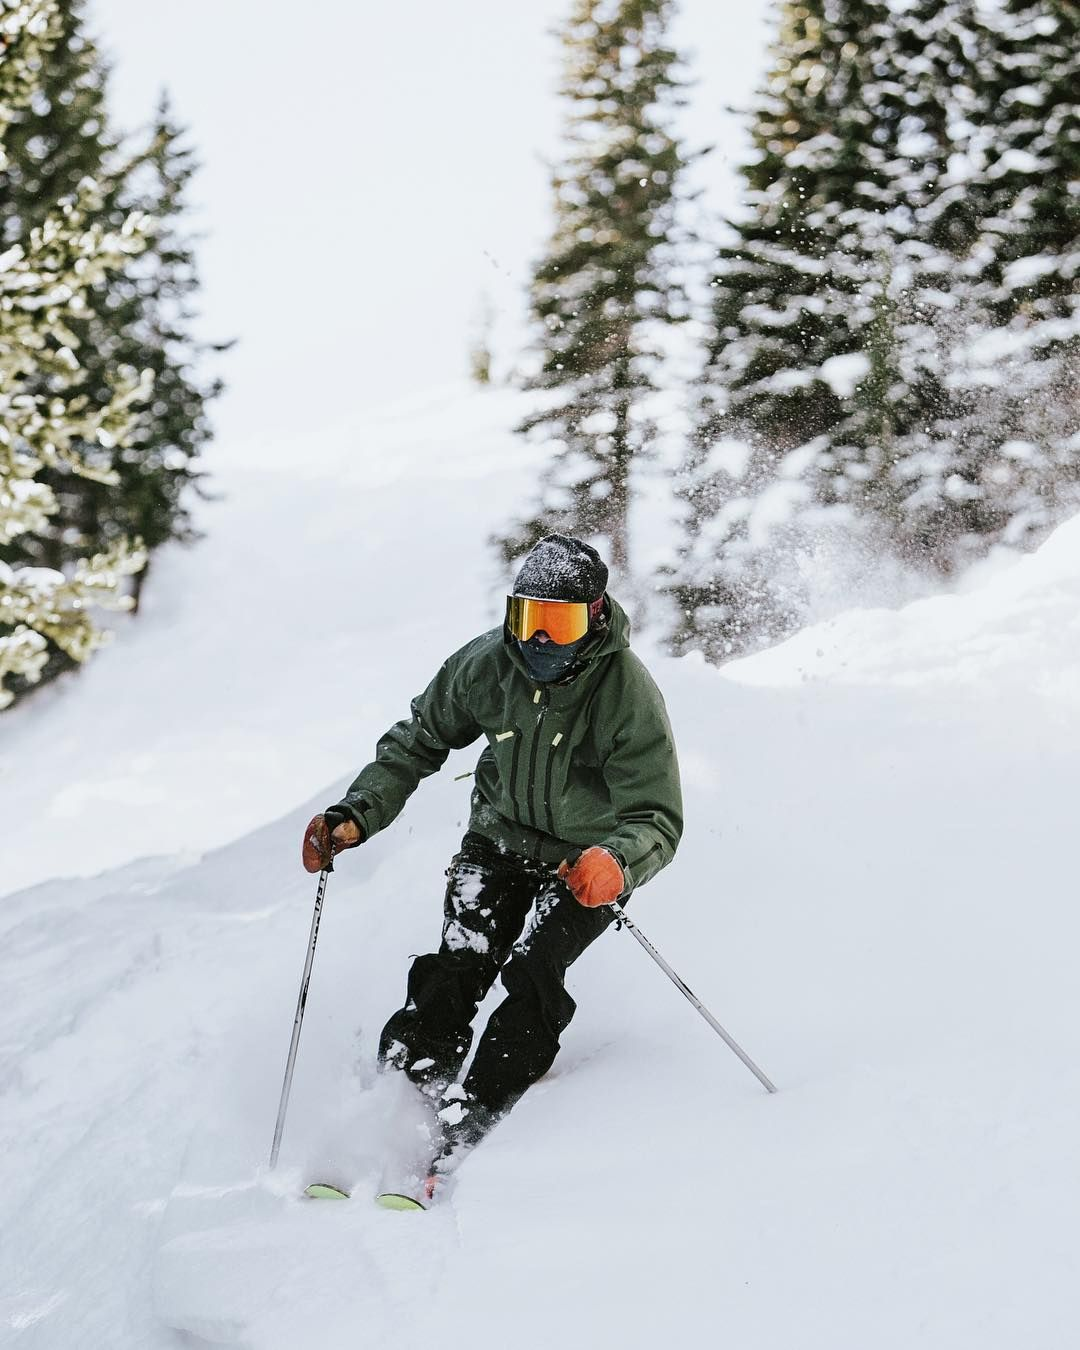 Get Fired Up Cody Cirillo In The Hatchet Red Rocks Breckenridge Findyourzeal Goggles Night Vision Free Skiing